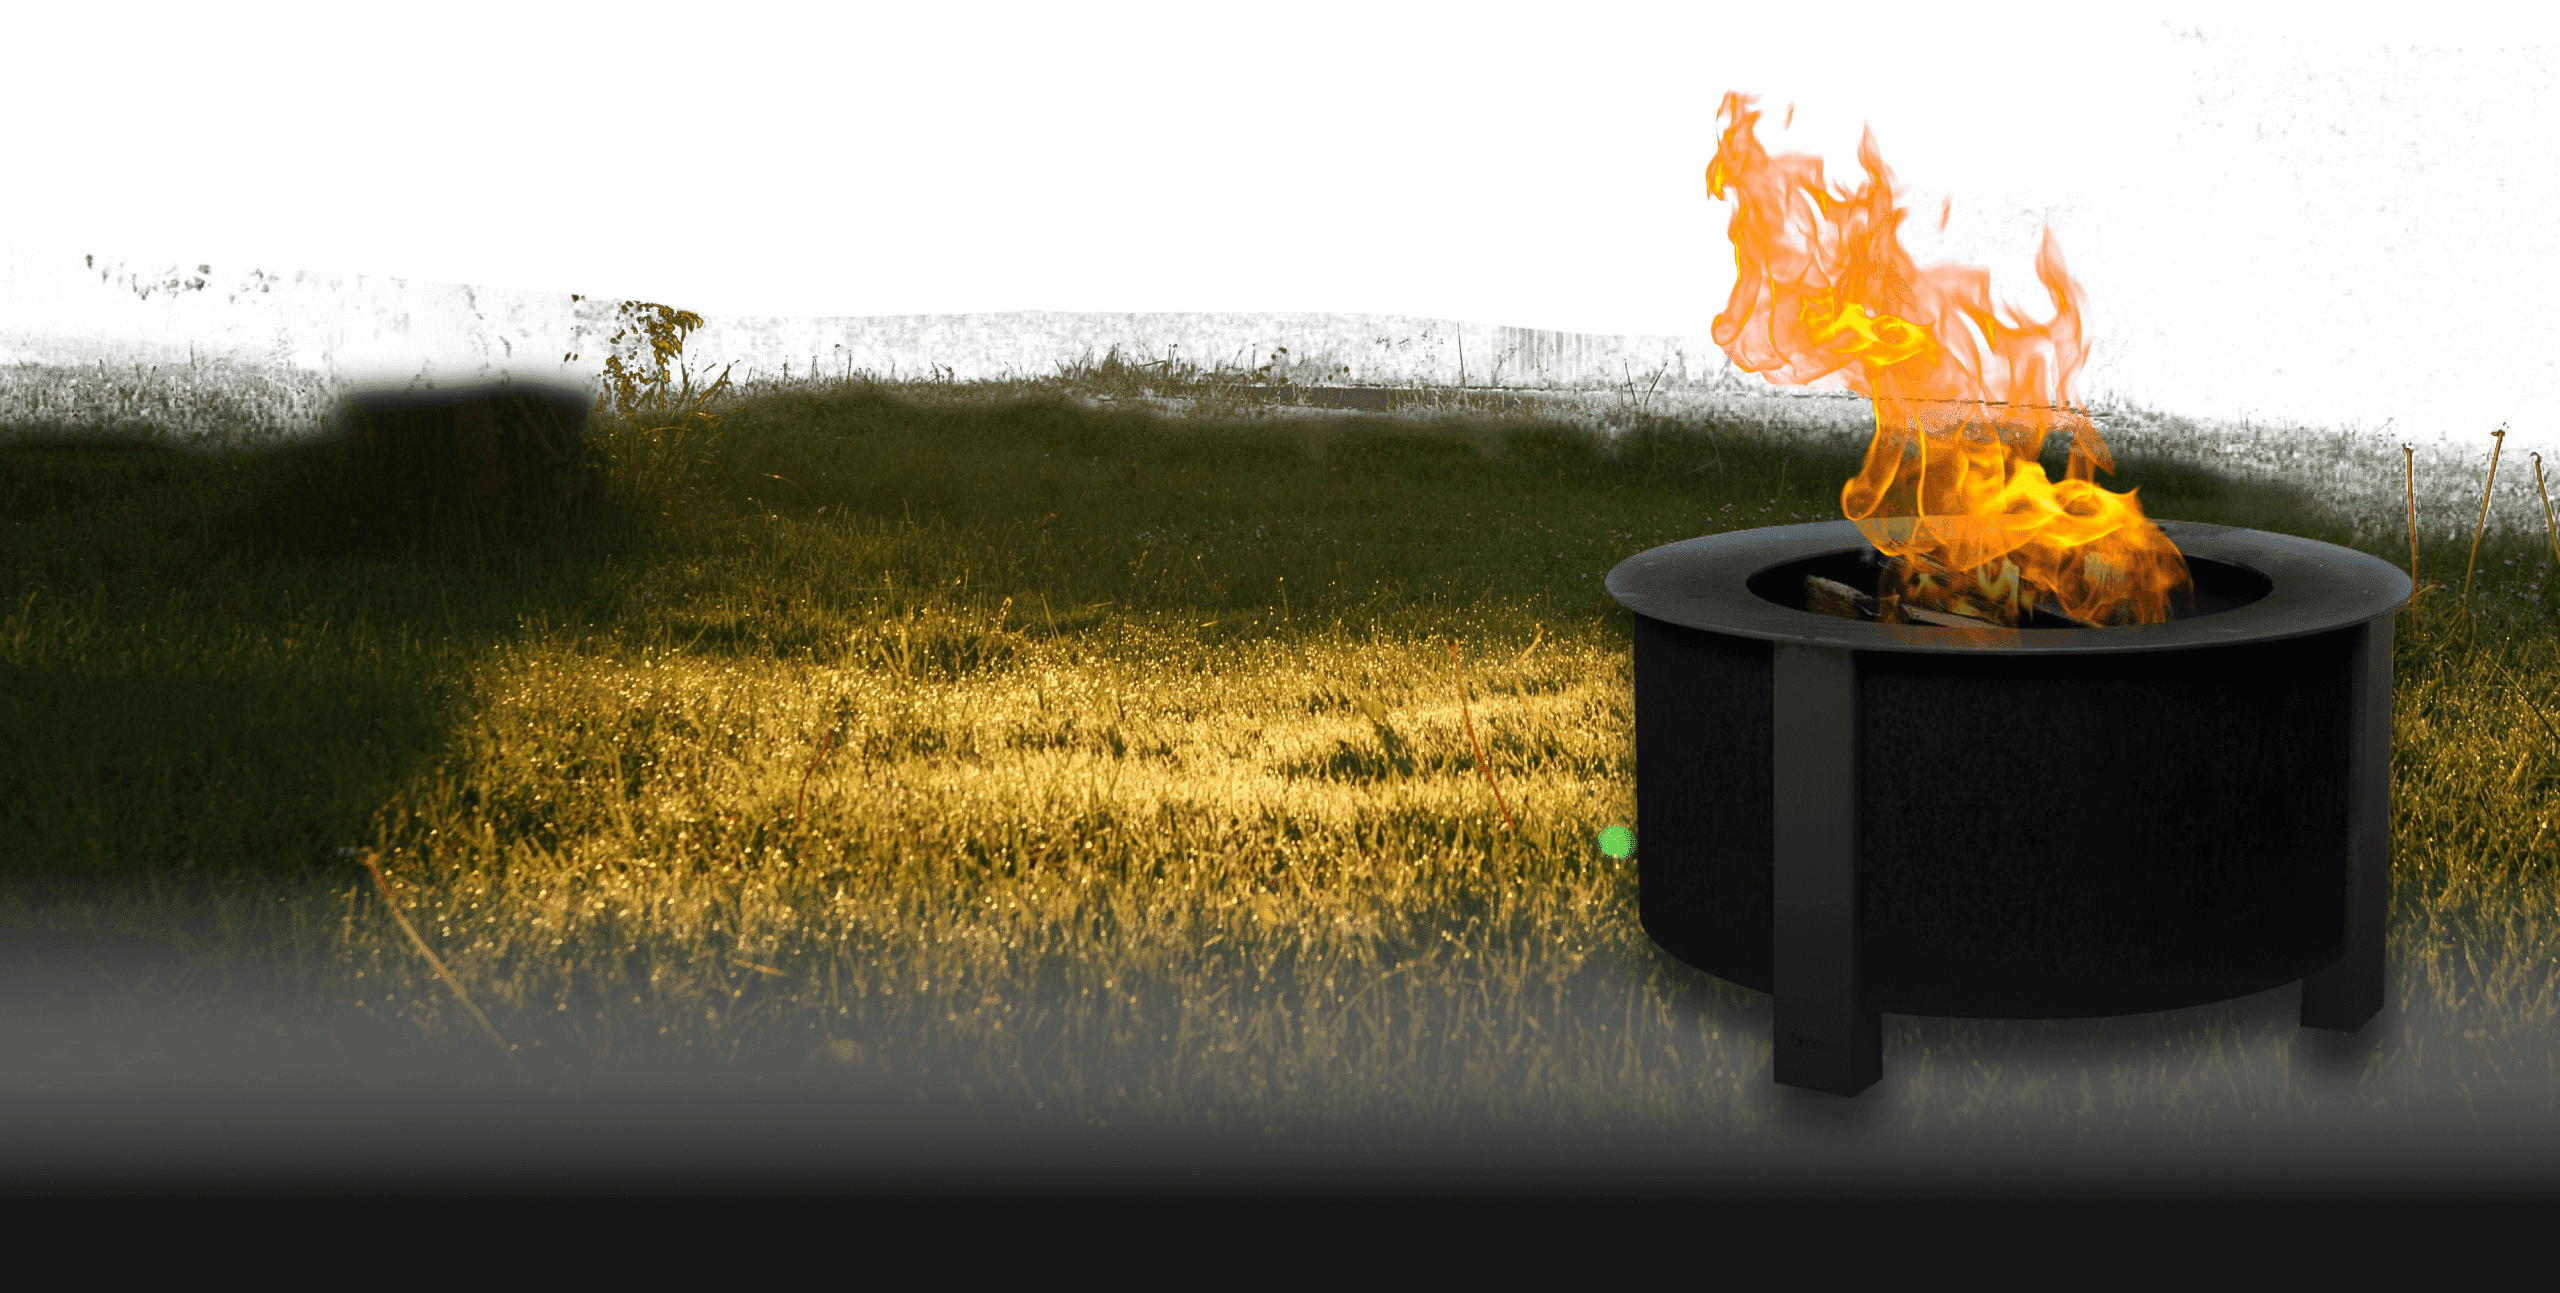 Firepit on golden lit grass